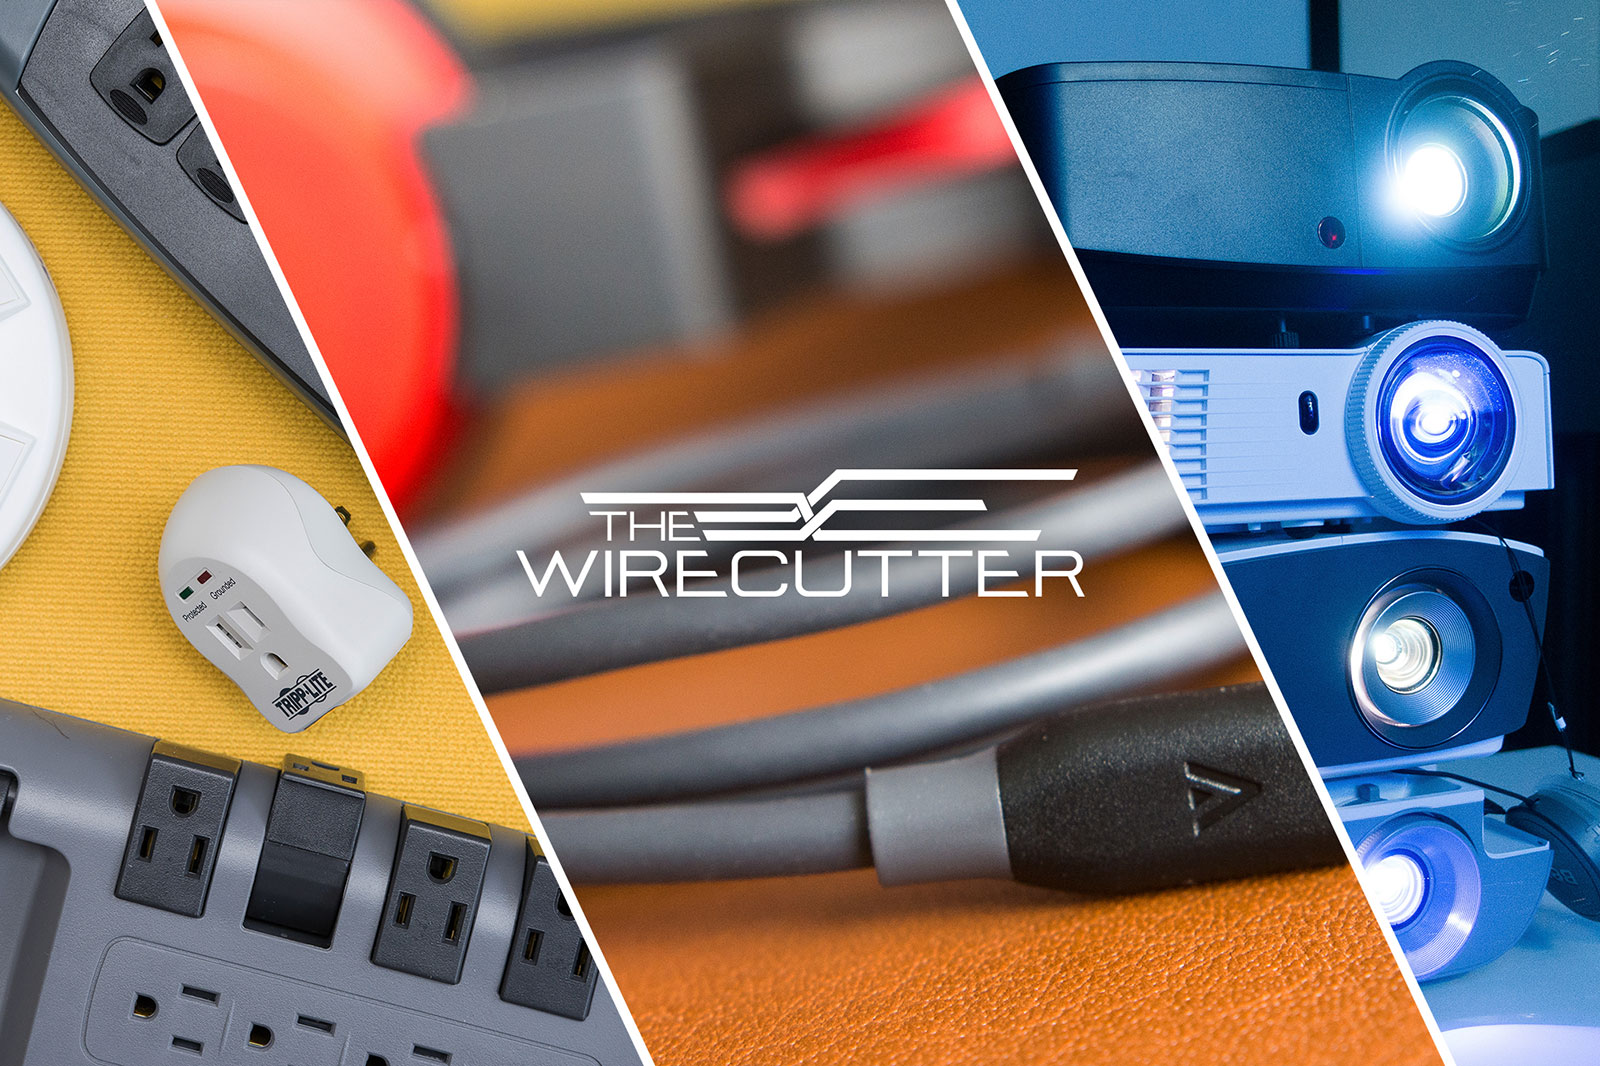 The Wirecutter S Best Deals Grenco Science S G Pen Elite Drops To